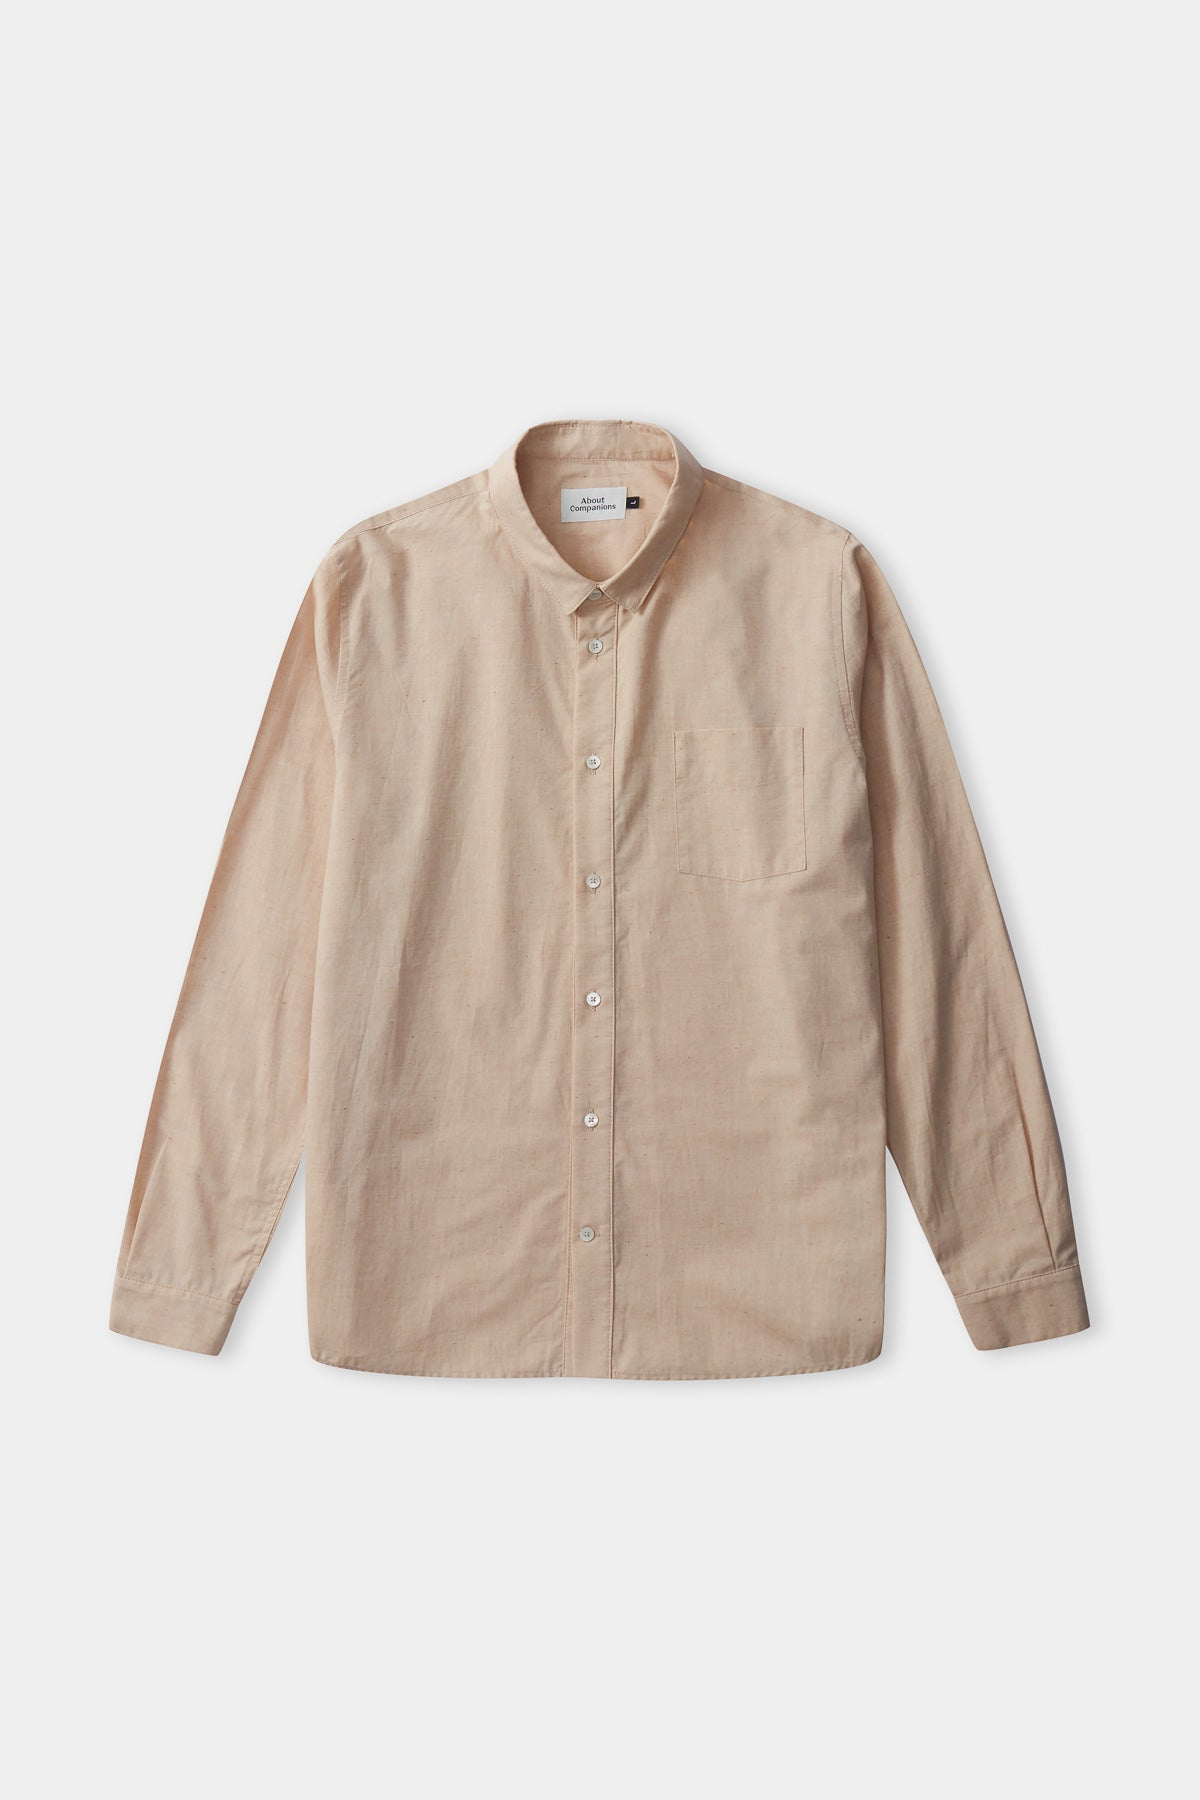 SIMON shirt eco color grown camel